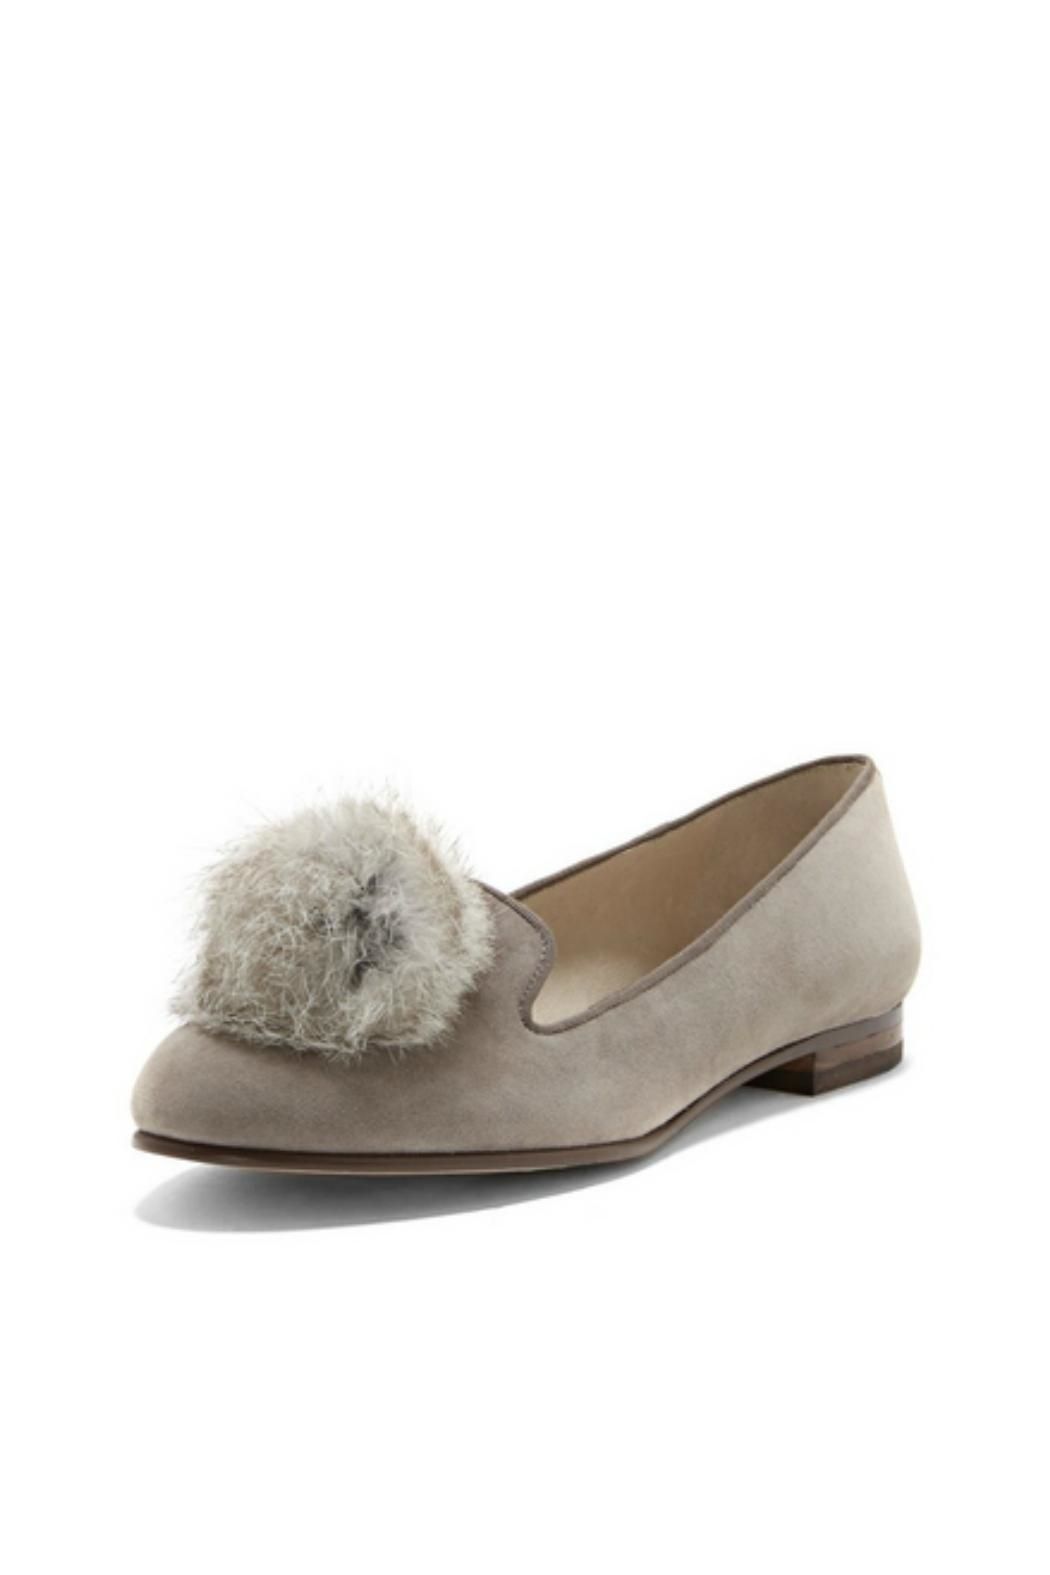 Louise Et Cie  Andres Pom Pom Loafer - Front Cropped Image